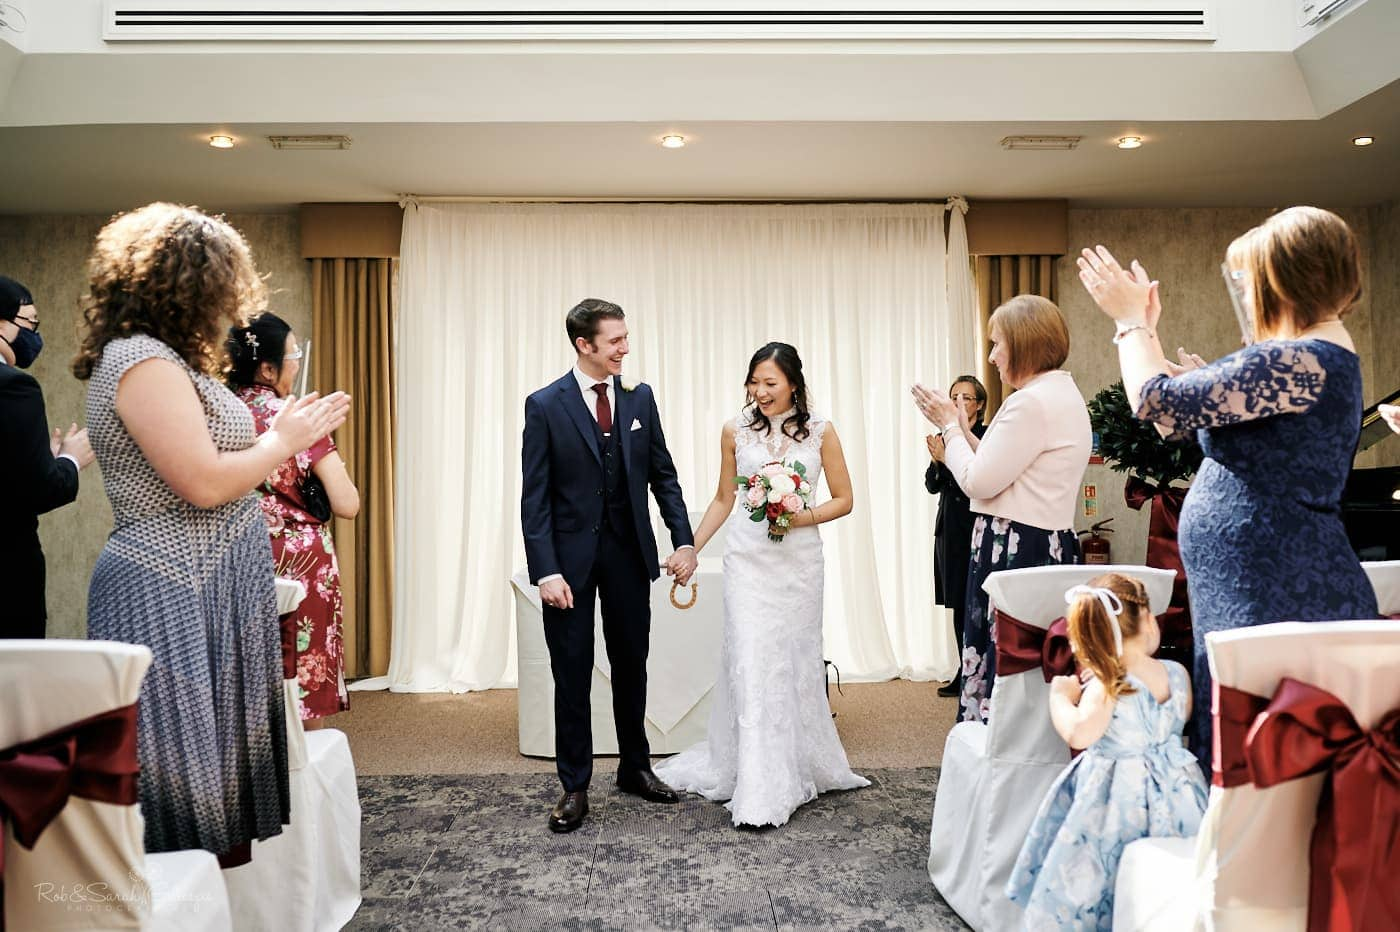 Bride and groom exit ceremony at Mallory Court as guests clap